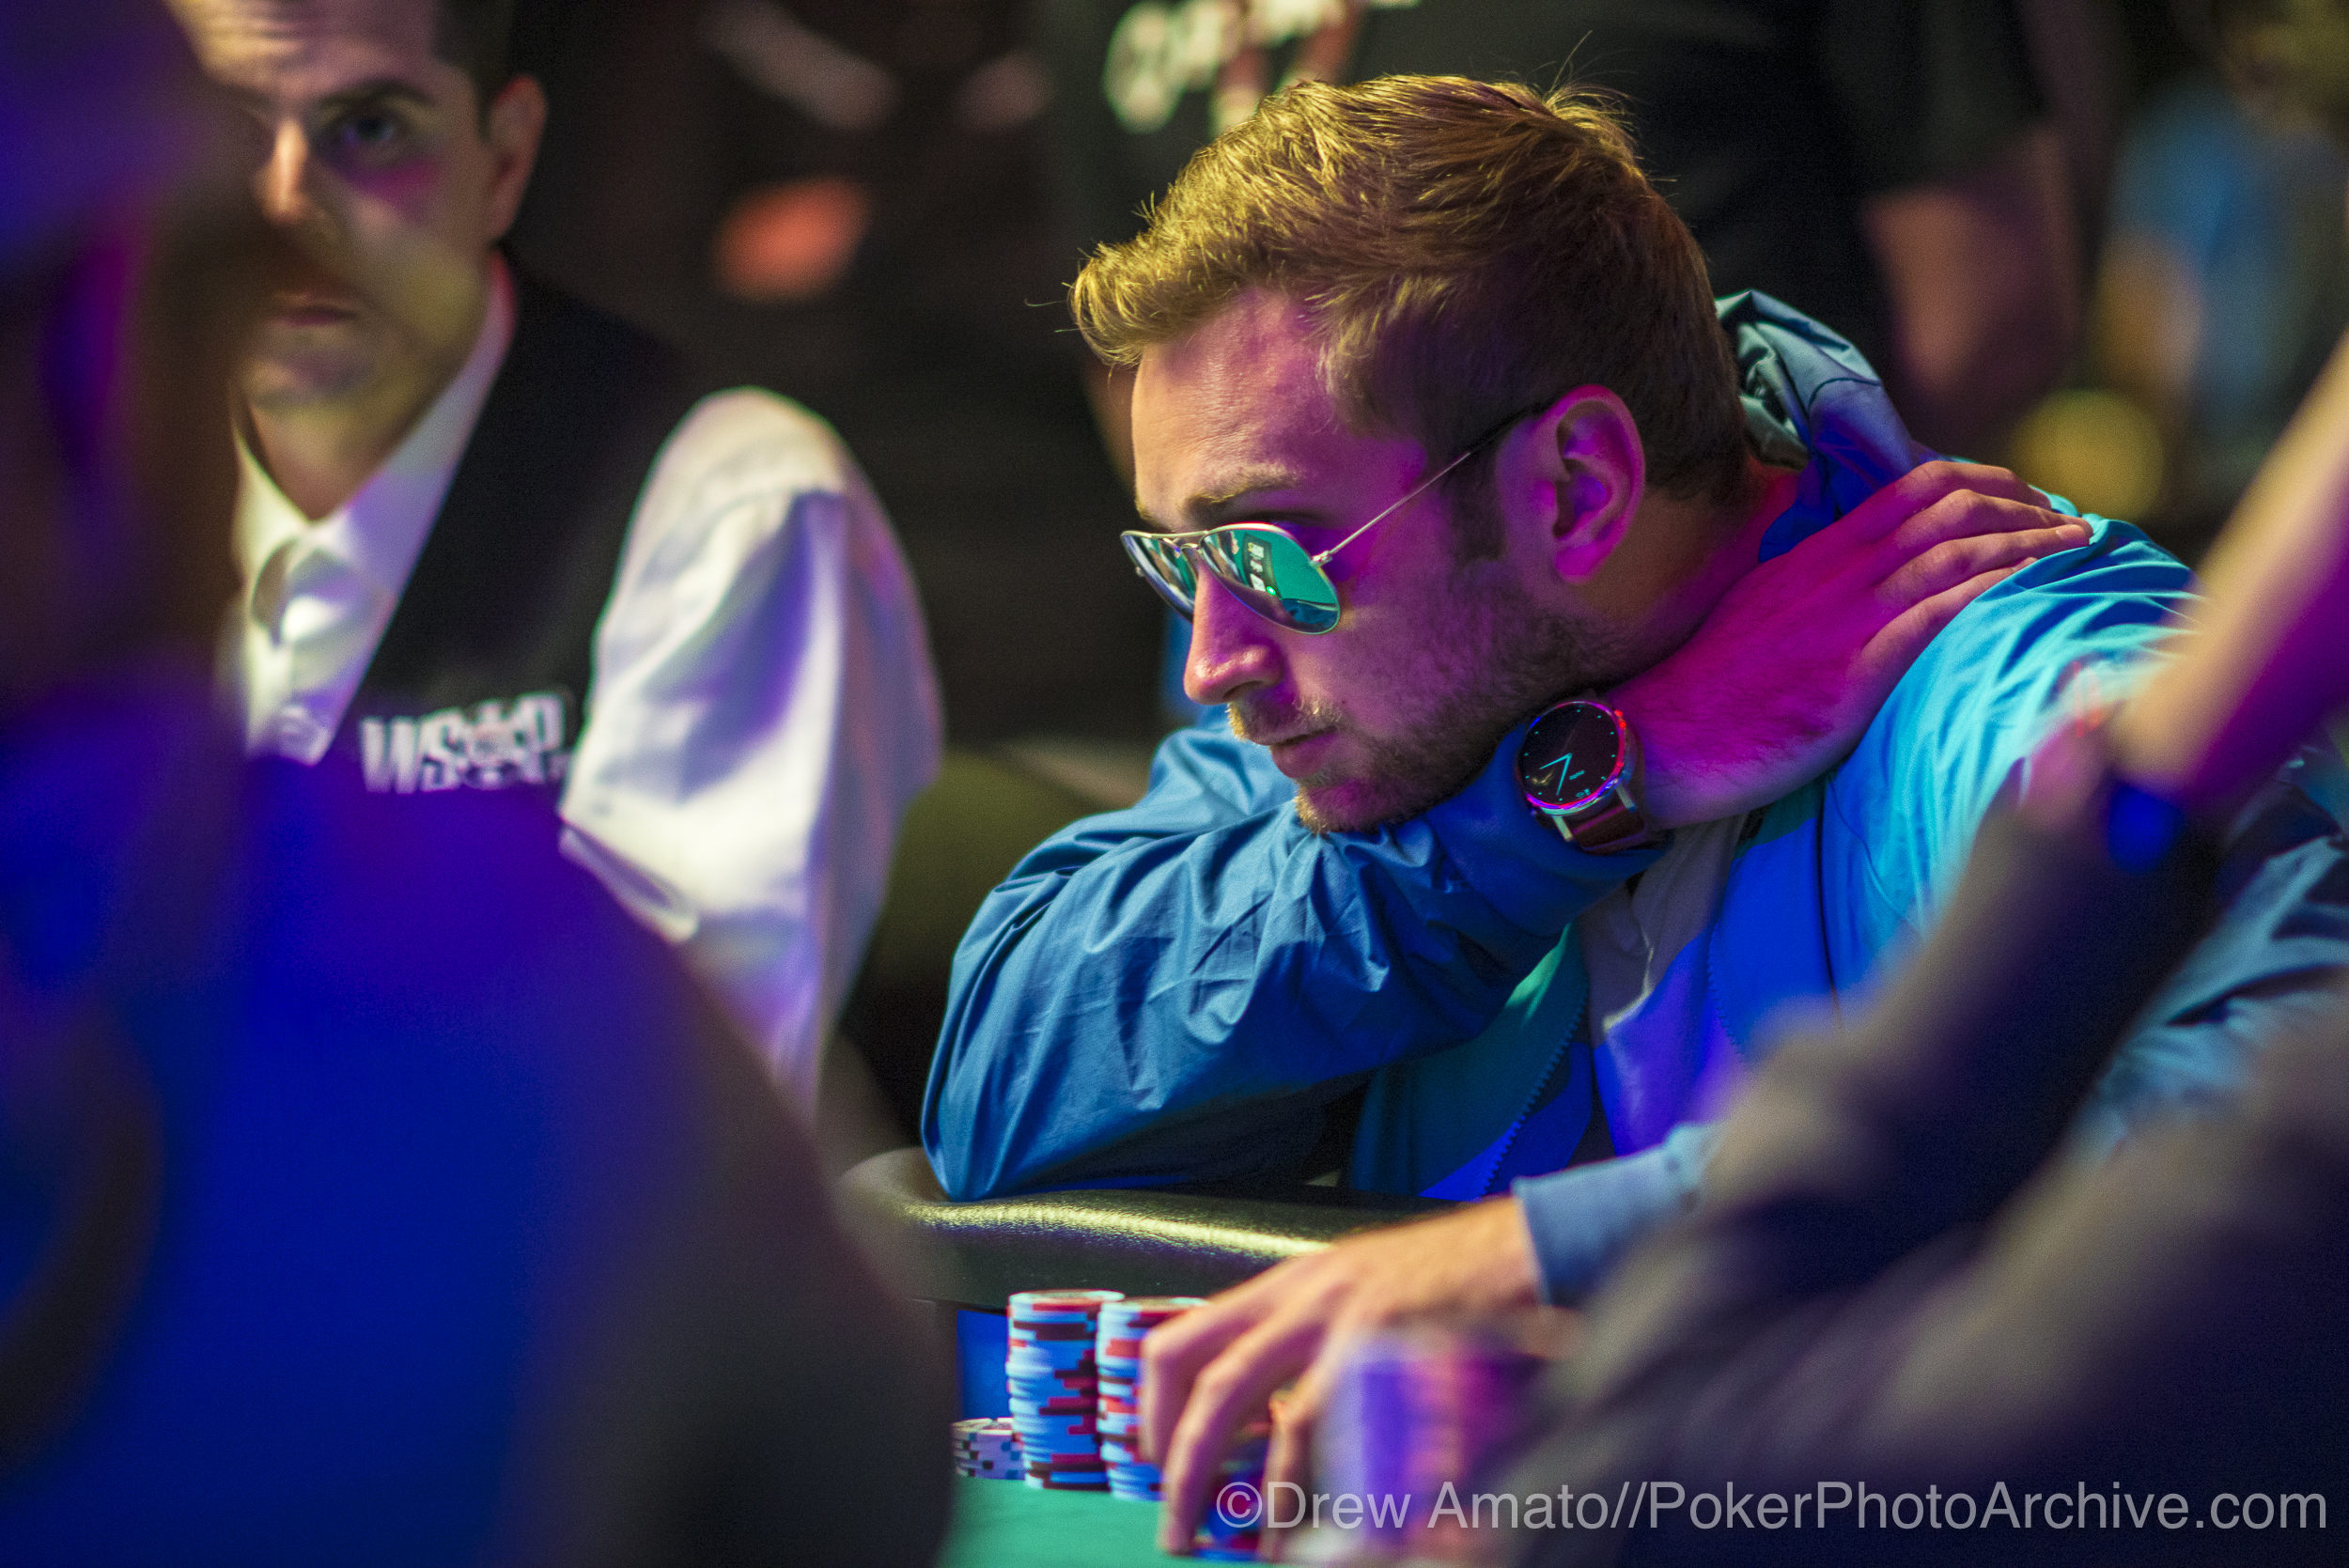 Connor Drinan_2017 WSOP_EV010_Day 3_Amato_DA66972.jpg